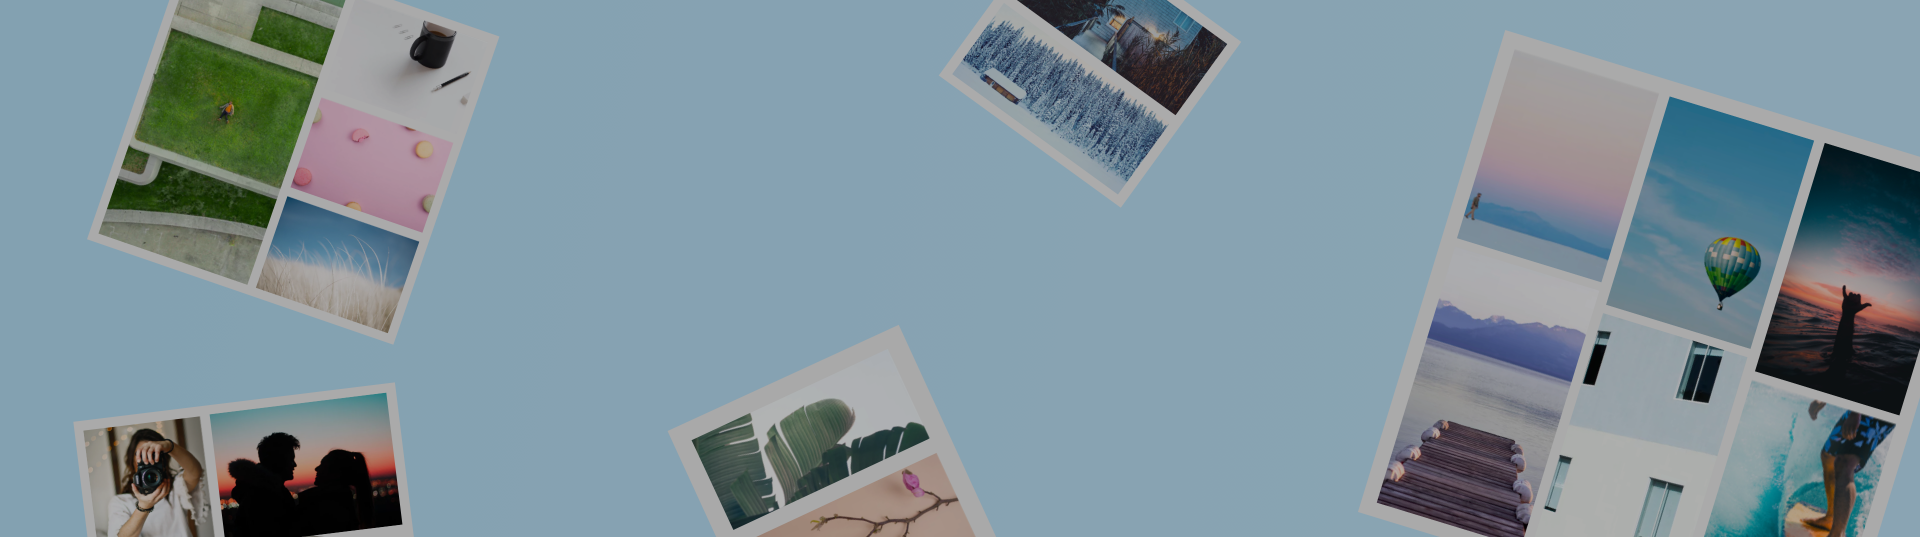 Make Photo Grid Collages Online with Free Collage Maker | Fotor